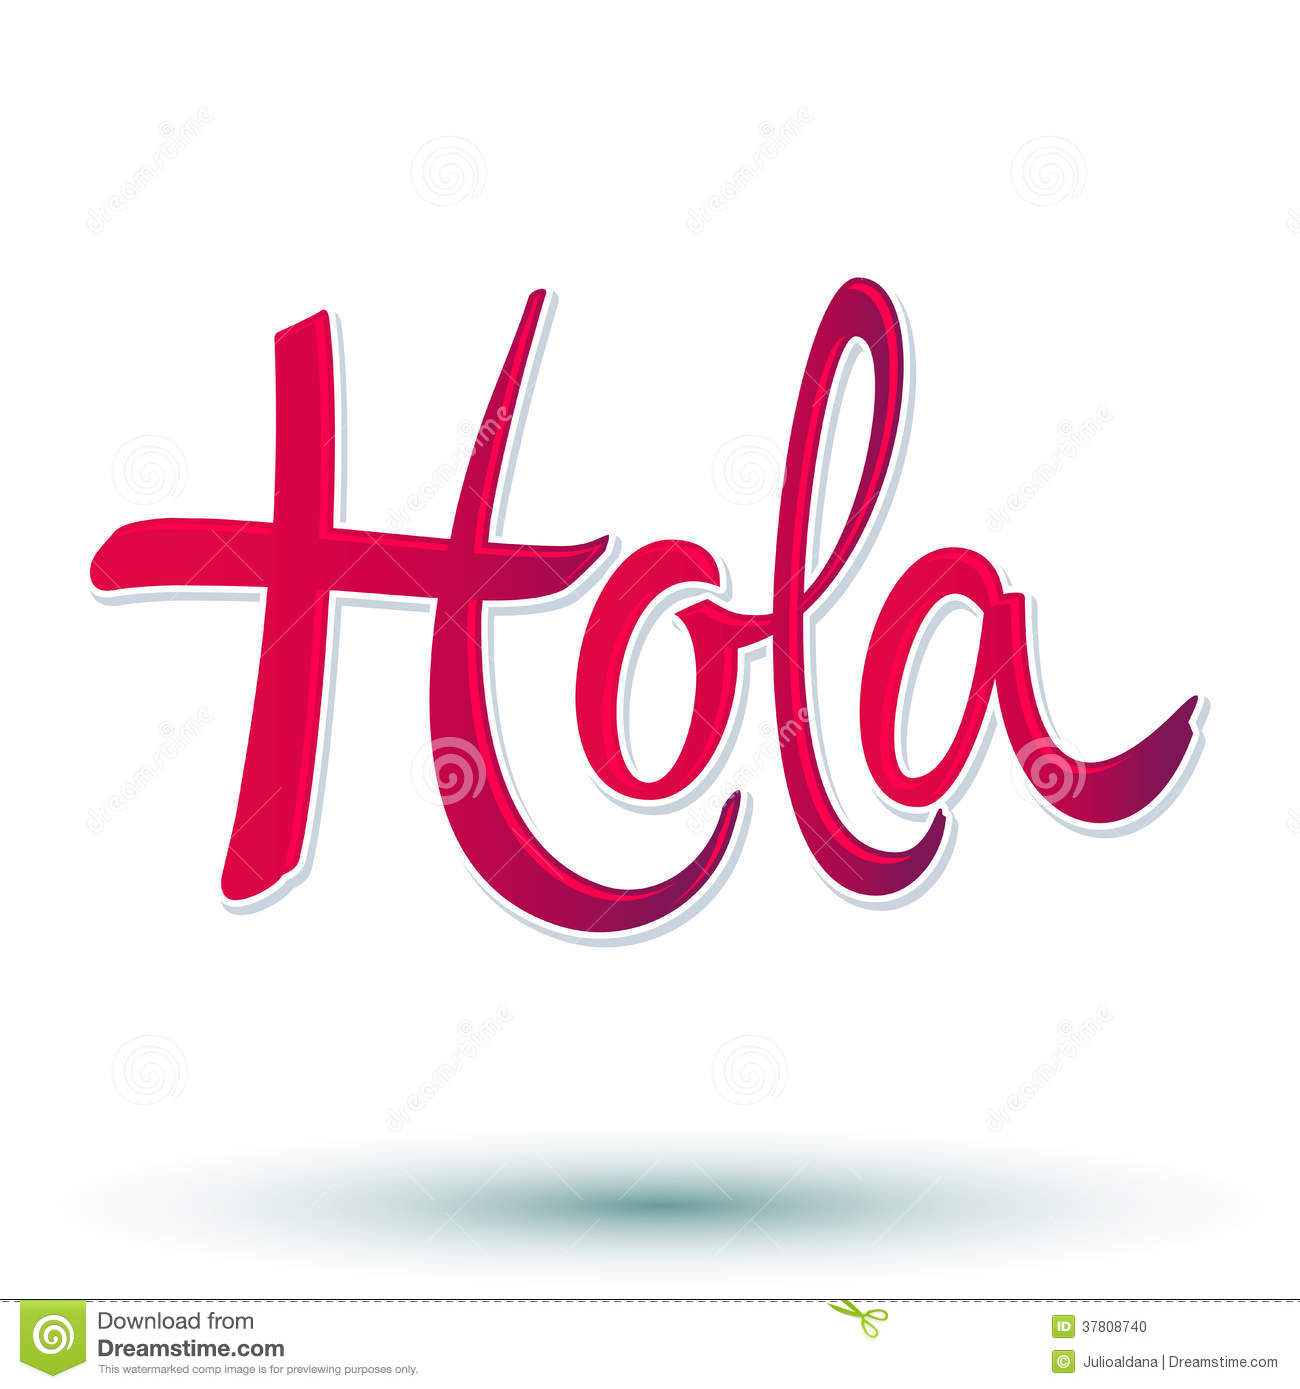 Hola - hello spanish text - vector lettering - eps 10 available.